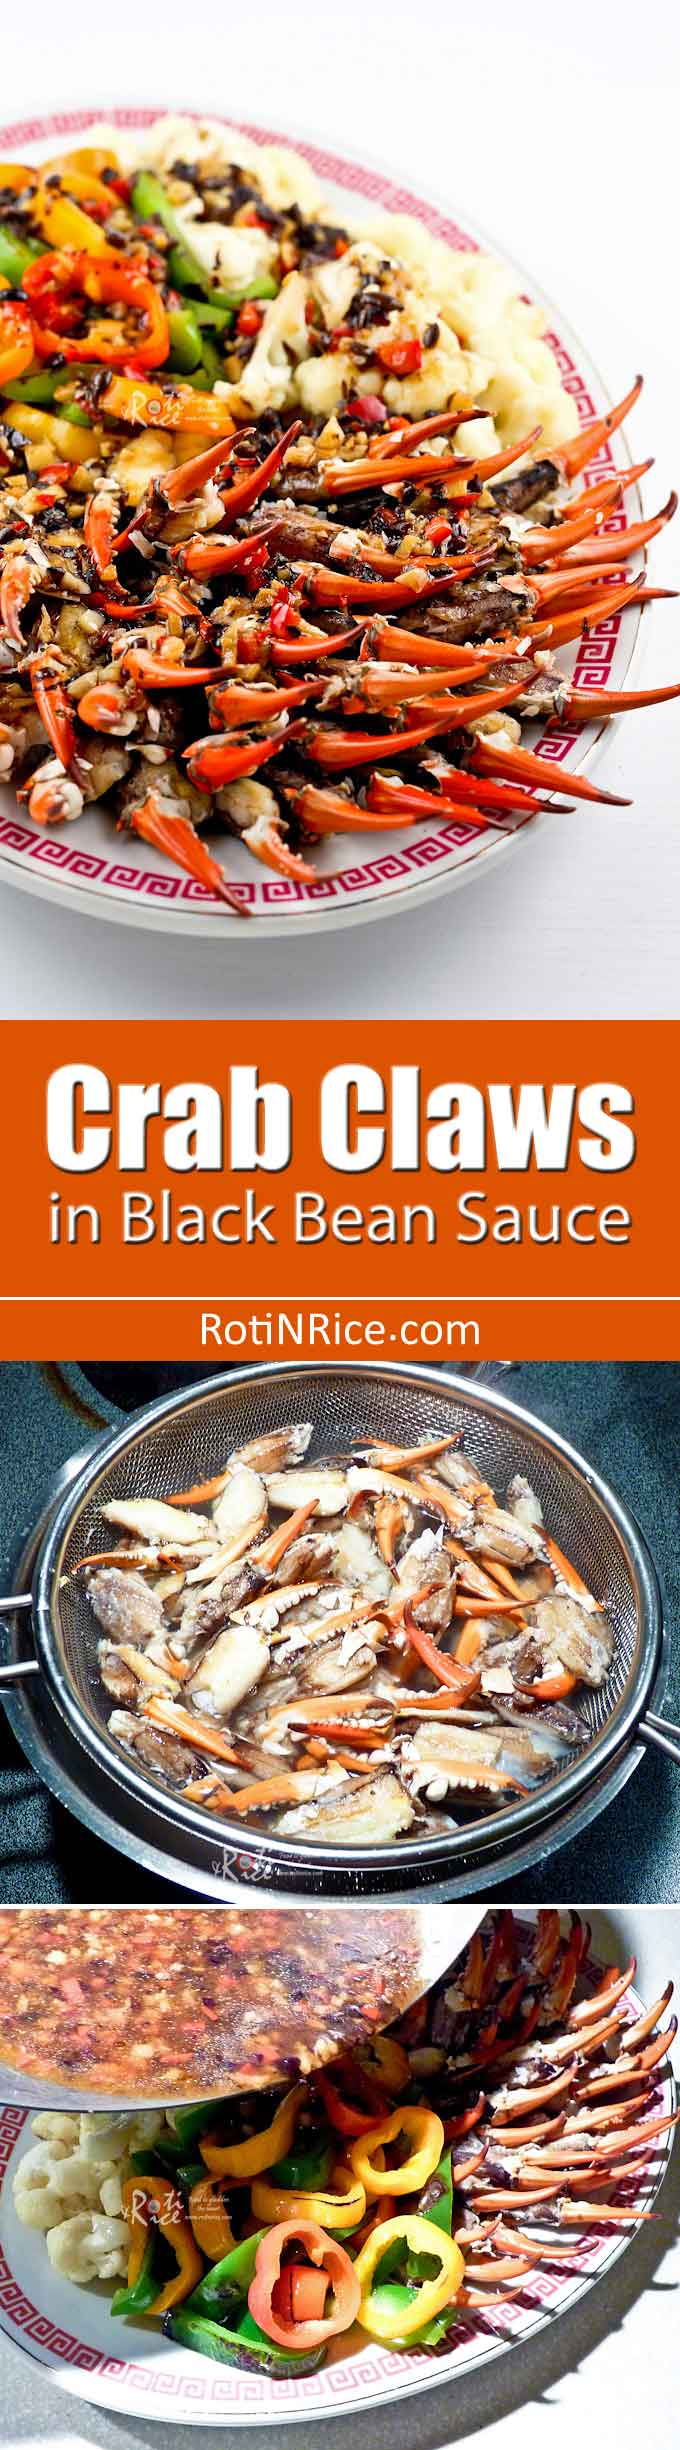 Fermented black beans give this Crab Claws in Black Bean Sauce great flavor. Add veggies to make it into a main dish delicious served with rice or noodles. | RotiNRice.com